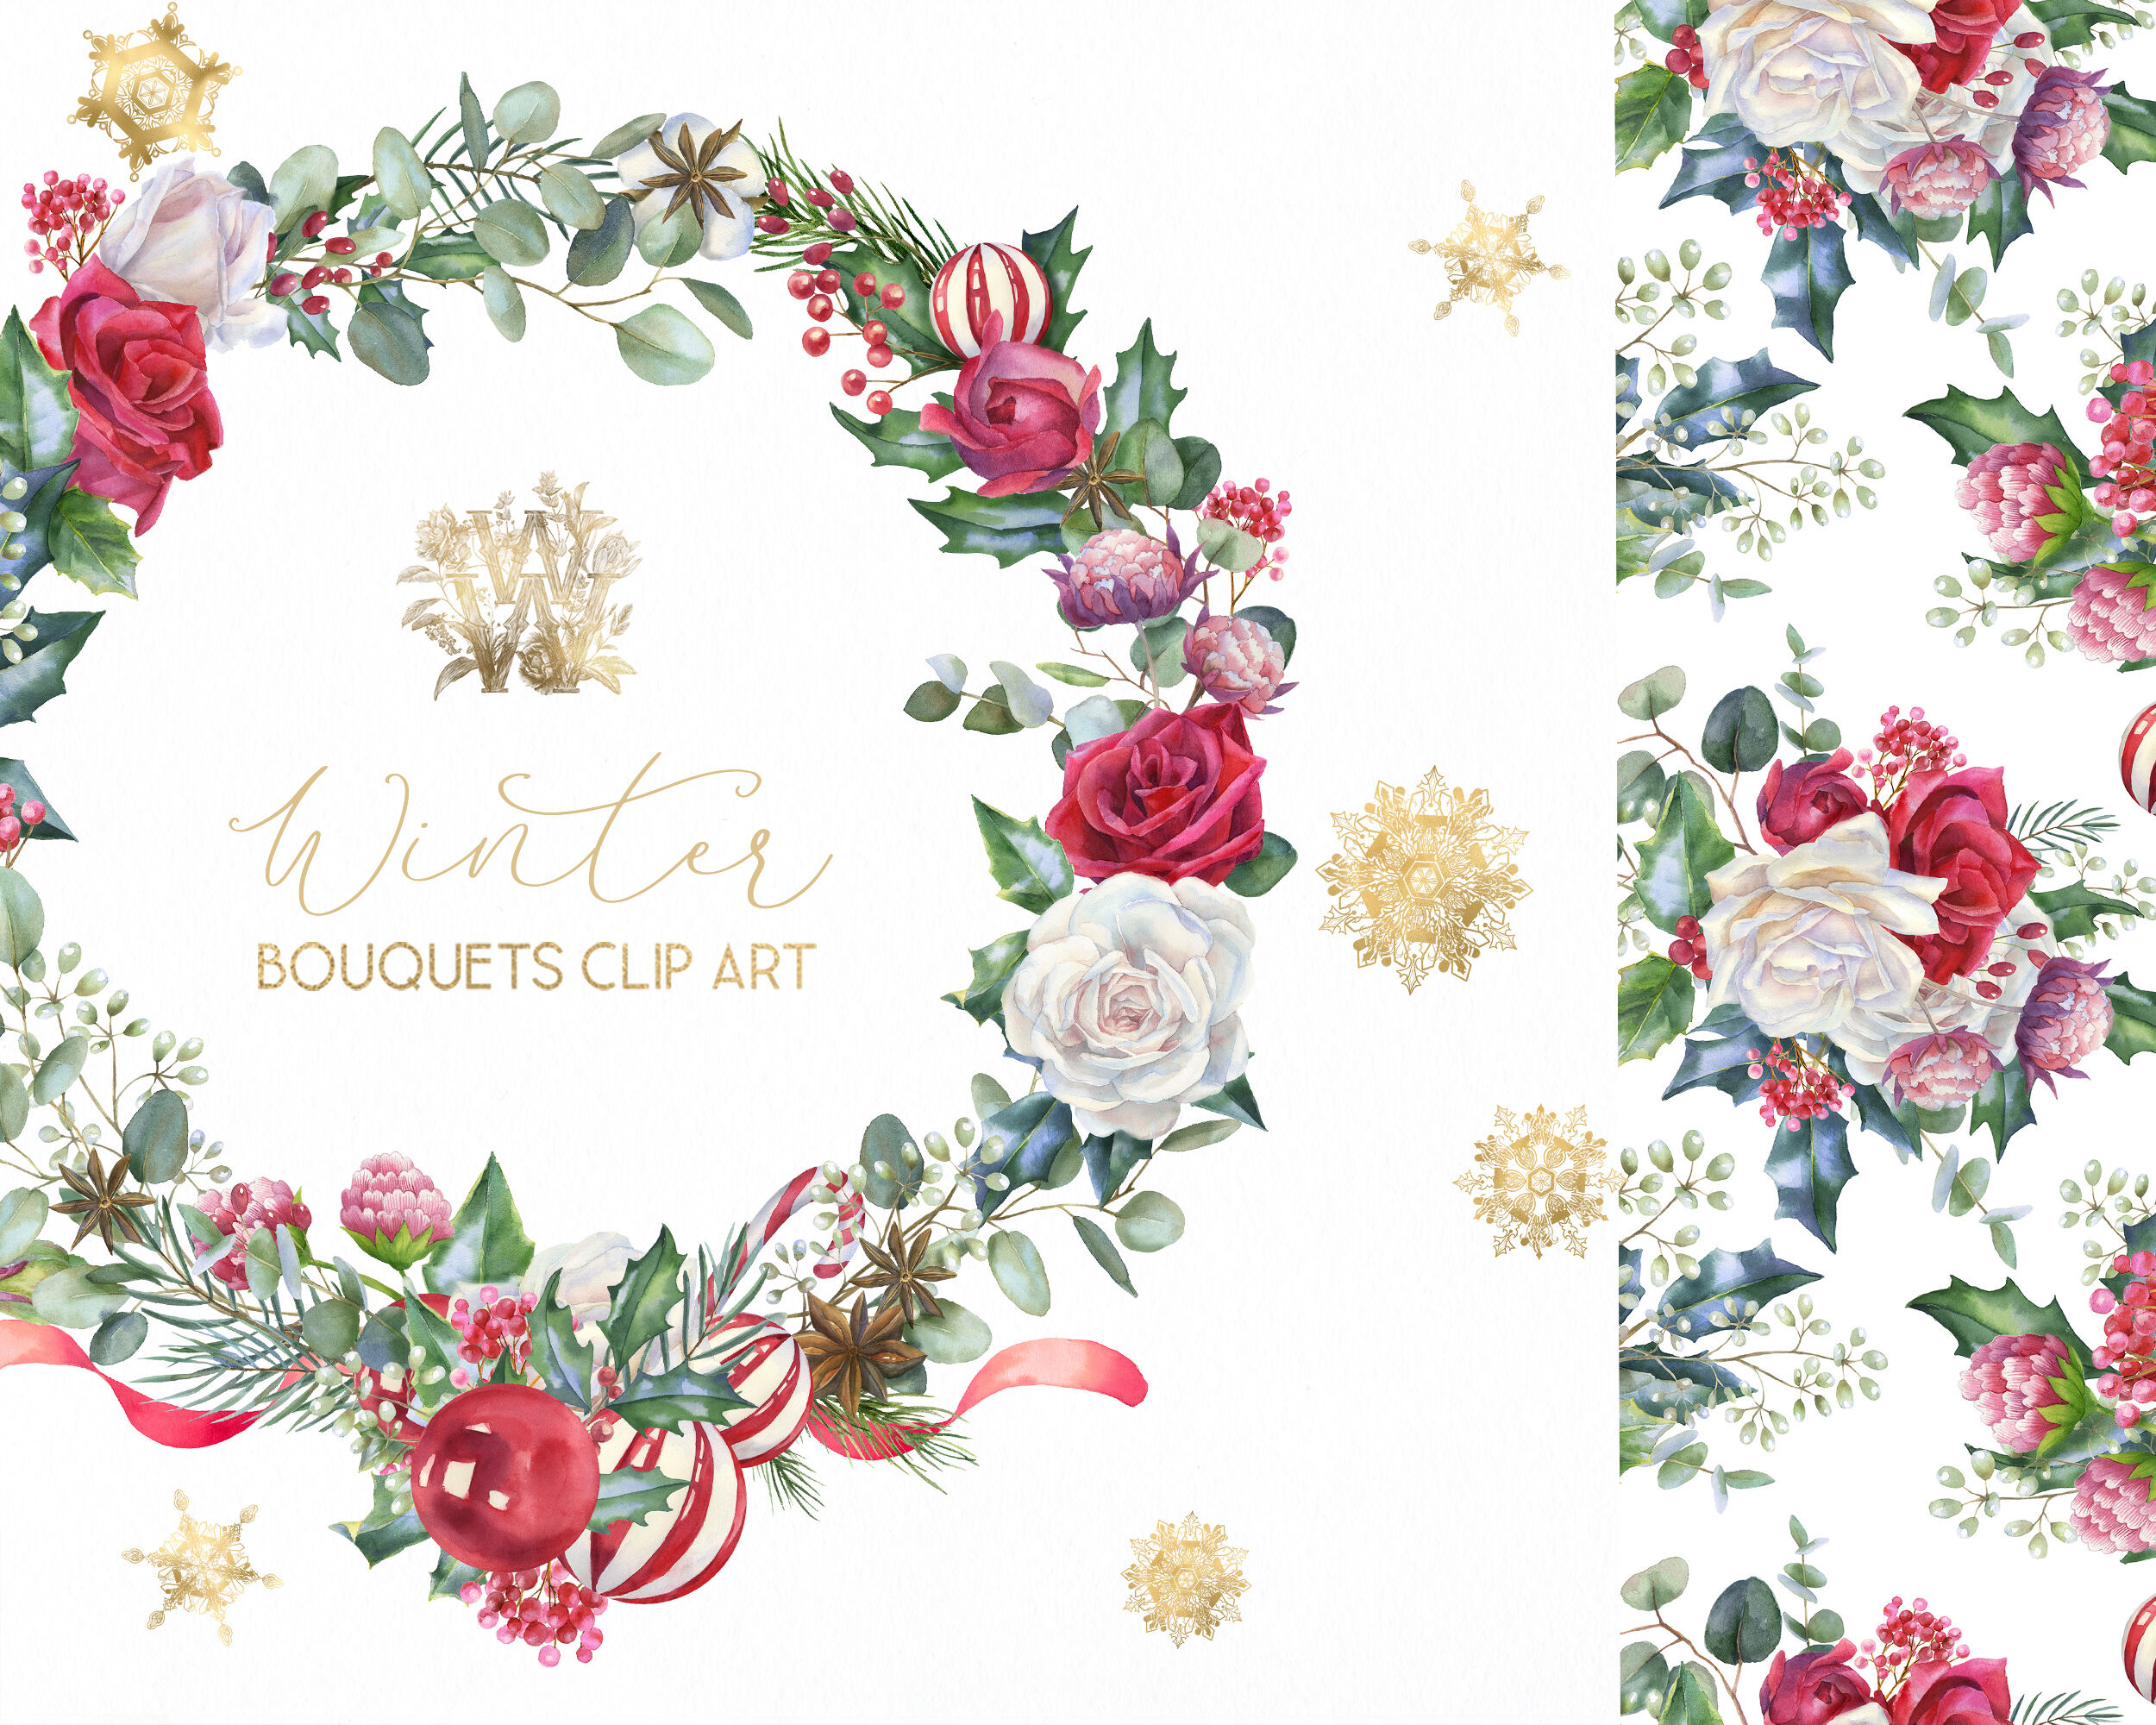 Christmas floral border clipart, Watercolor winter frame.